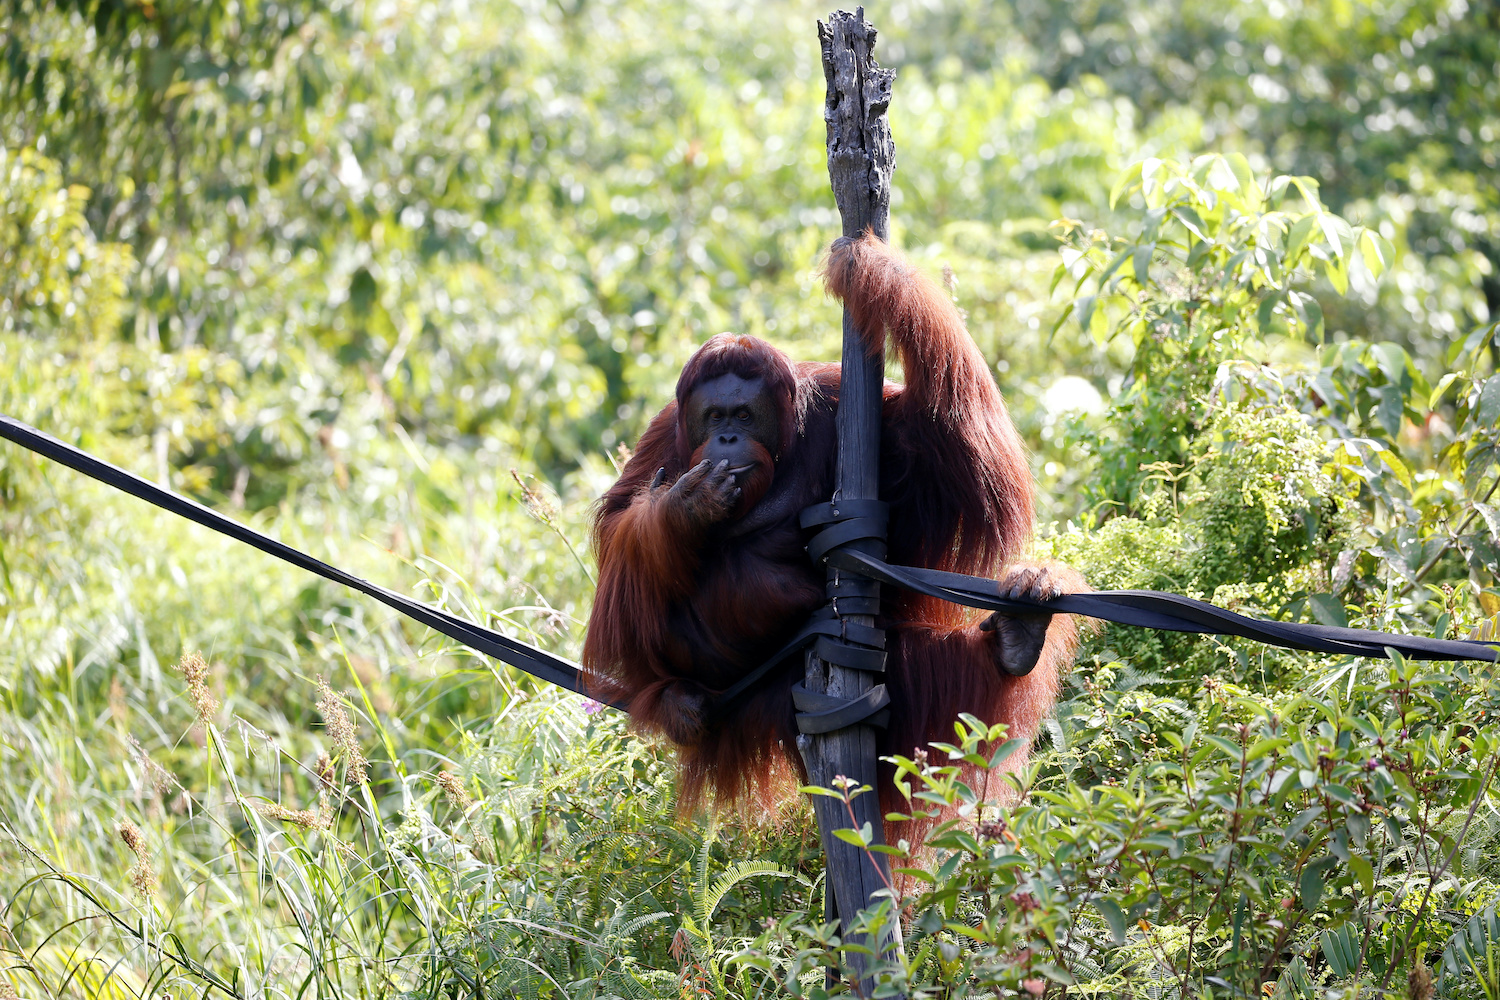 Fani, a 15-year-old orangutan, hangs on a pole at the Orangutan Rehabilitation and Reintroduction site of the Borneo Orangutan Survival Foundation in East Kalimantan province of Indonesia. (Reuters Photo)